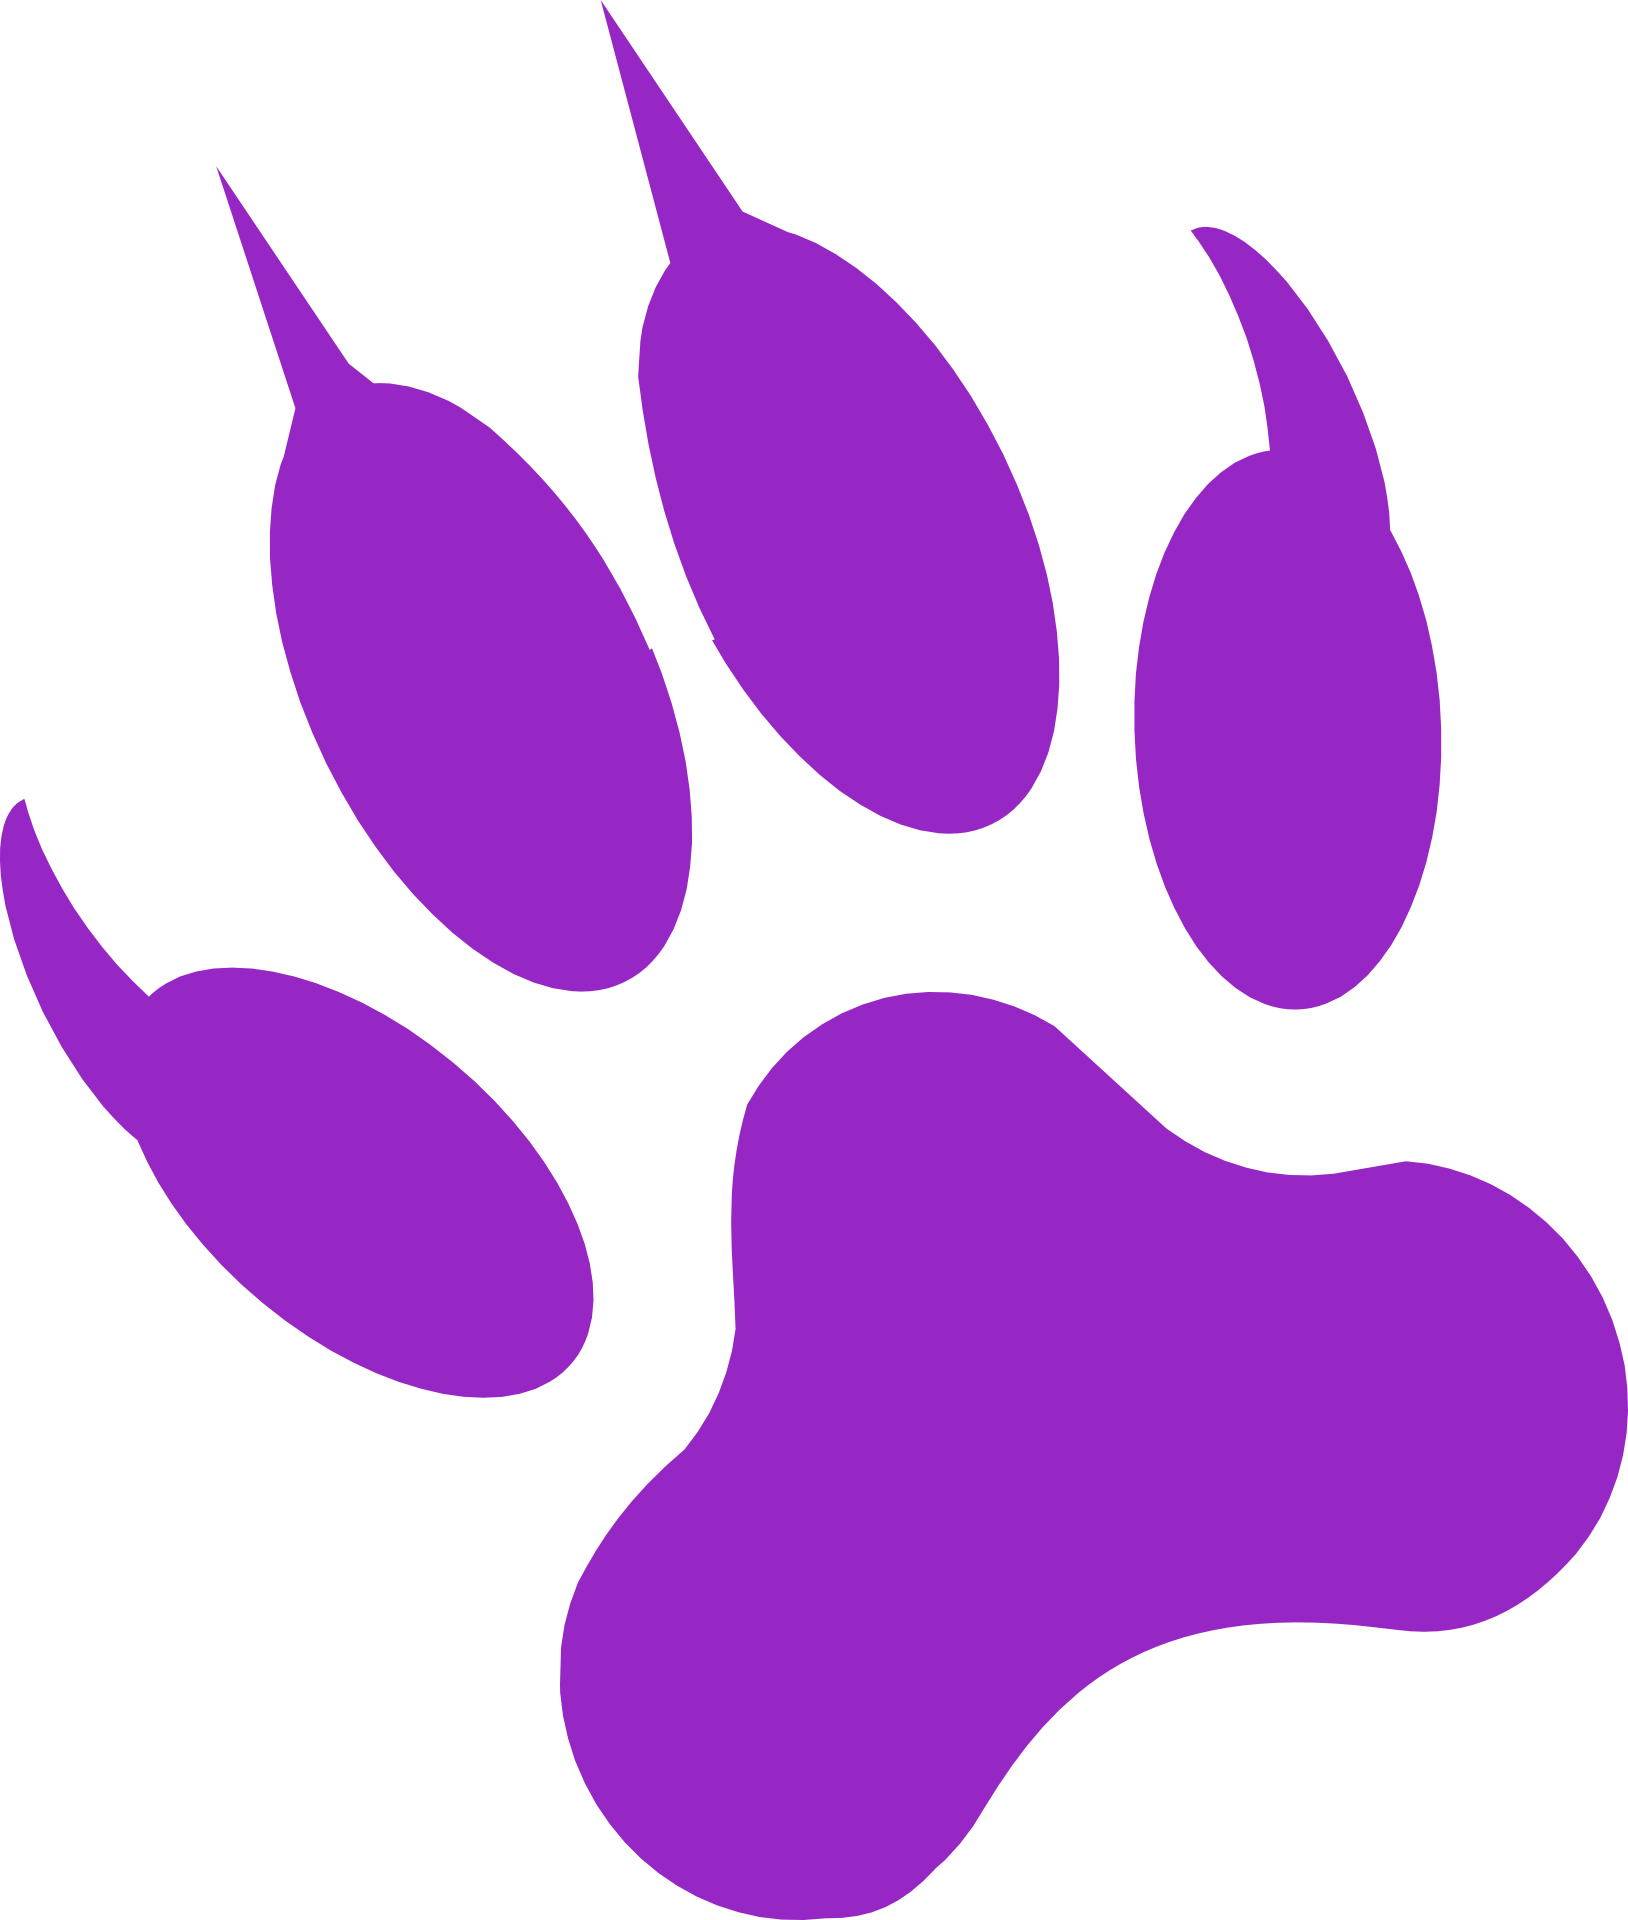 Purple panther png. Gray wolf black cougar